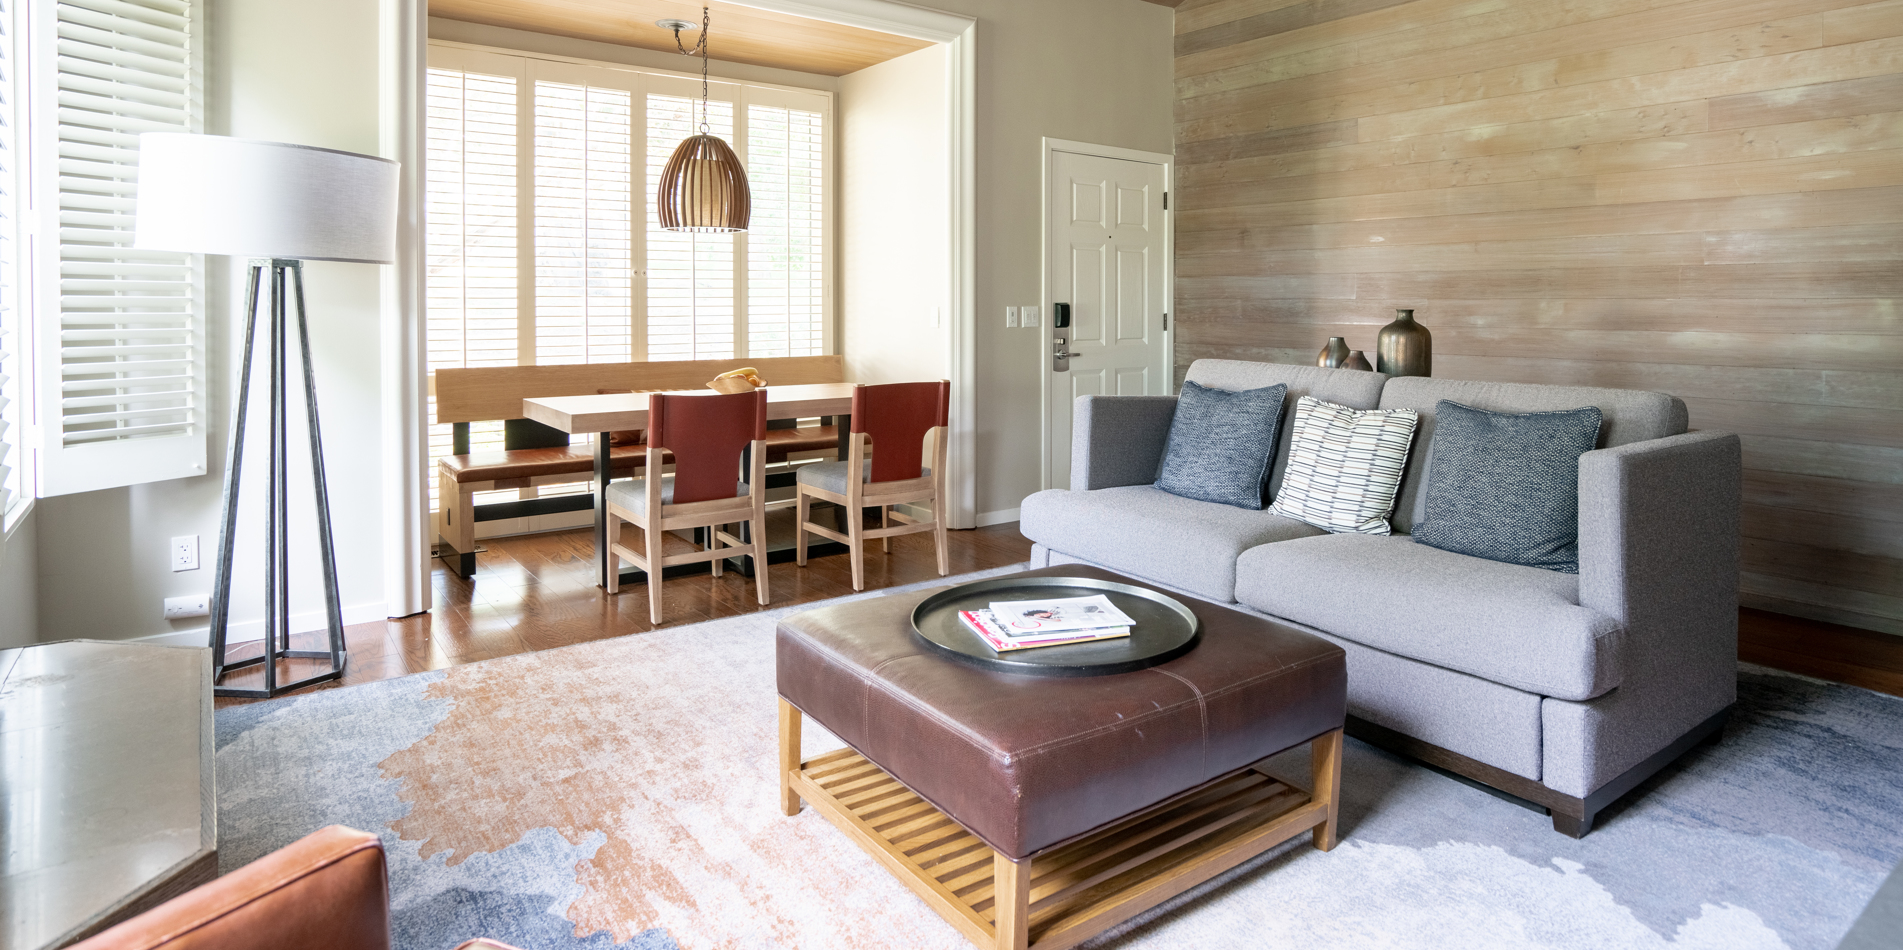 Carmel Valley Ranch_Accommodations_Hilltop Garland_Lounge_252_CR